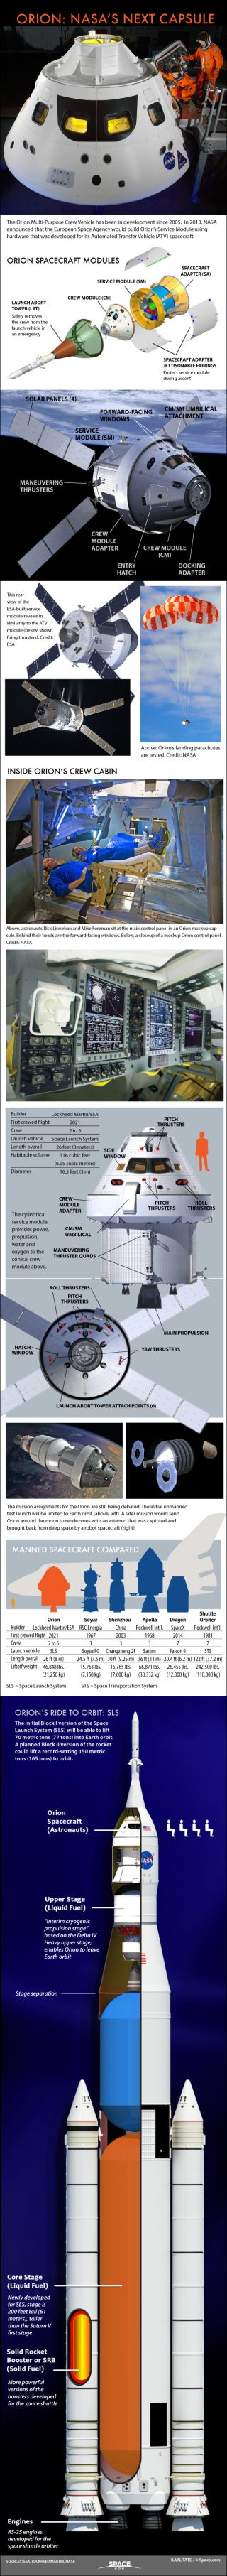 Orion Explained: NASA's Multi-Purpose Crew Vehicle ...